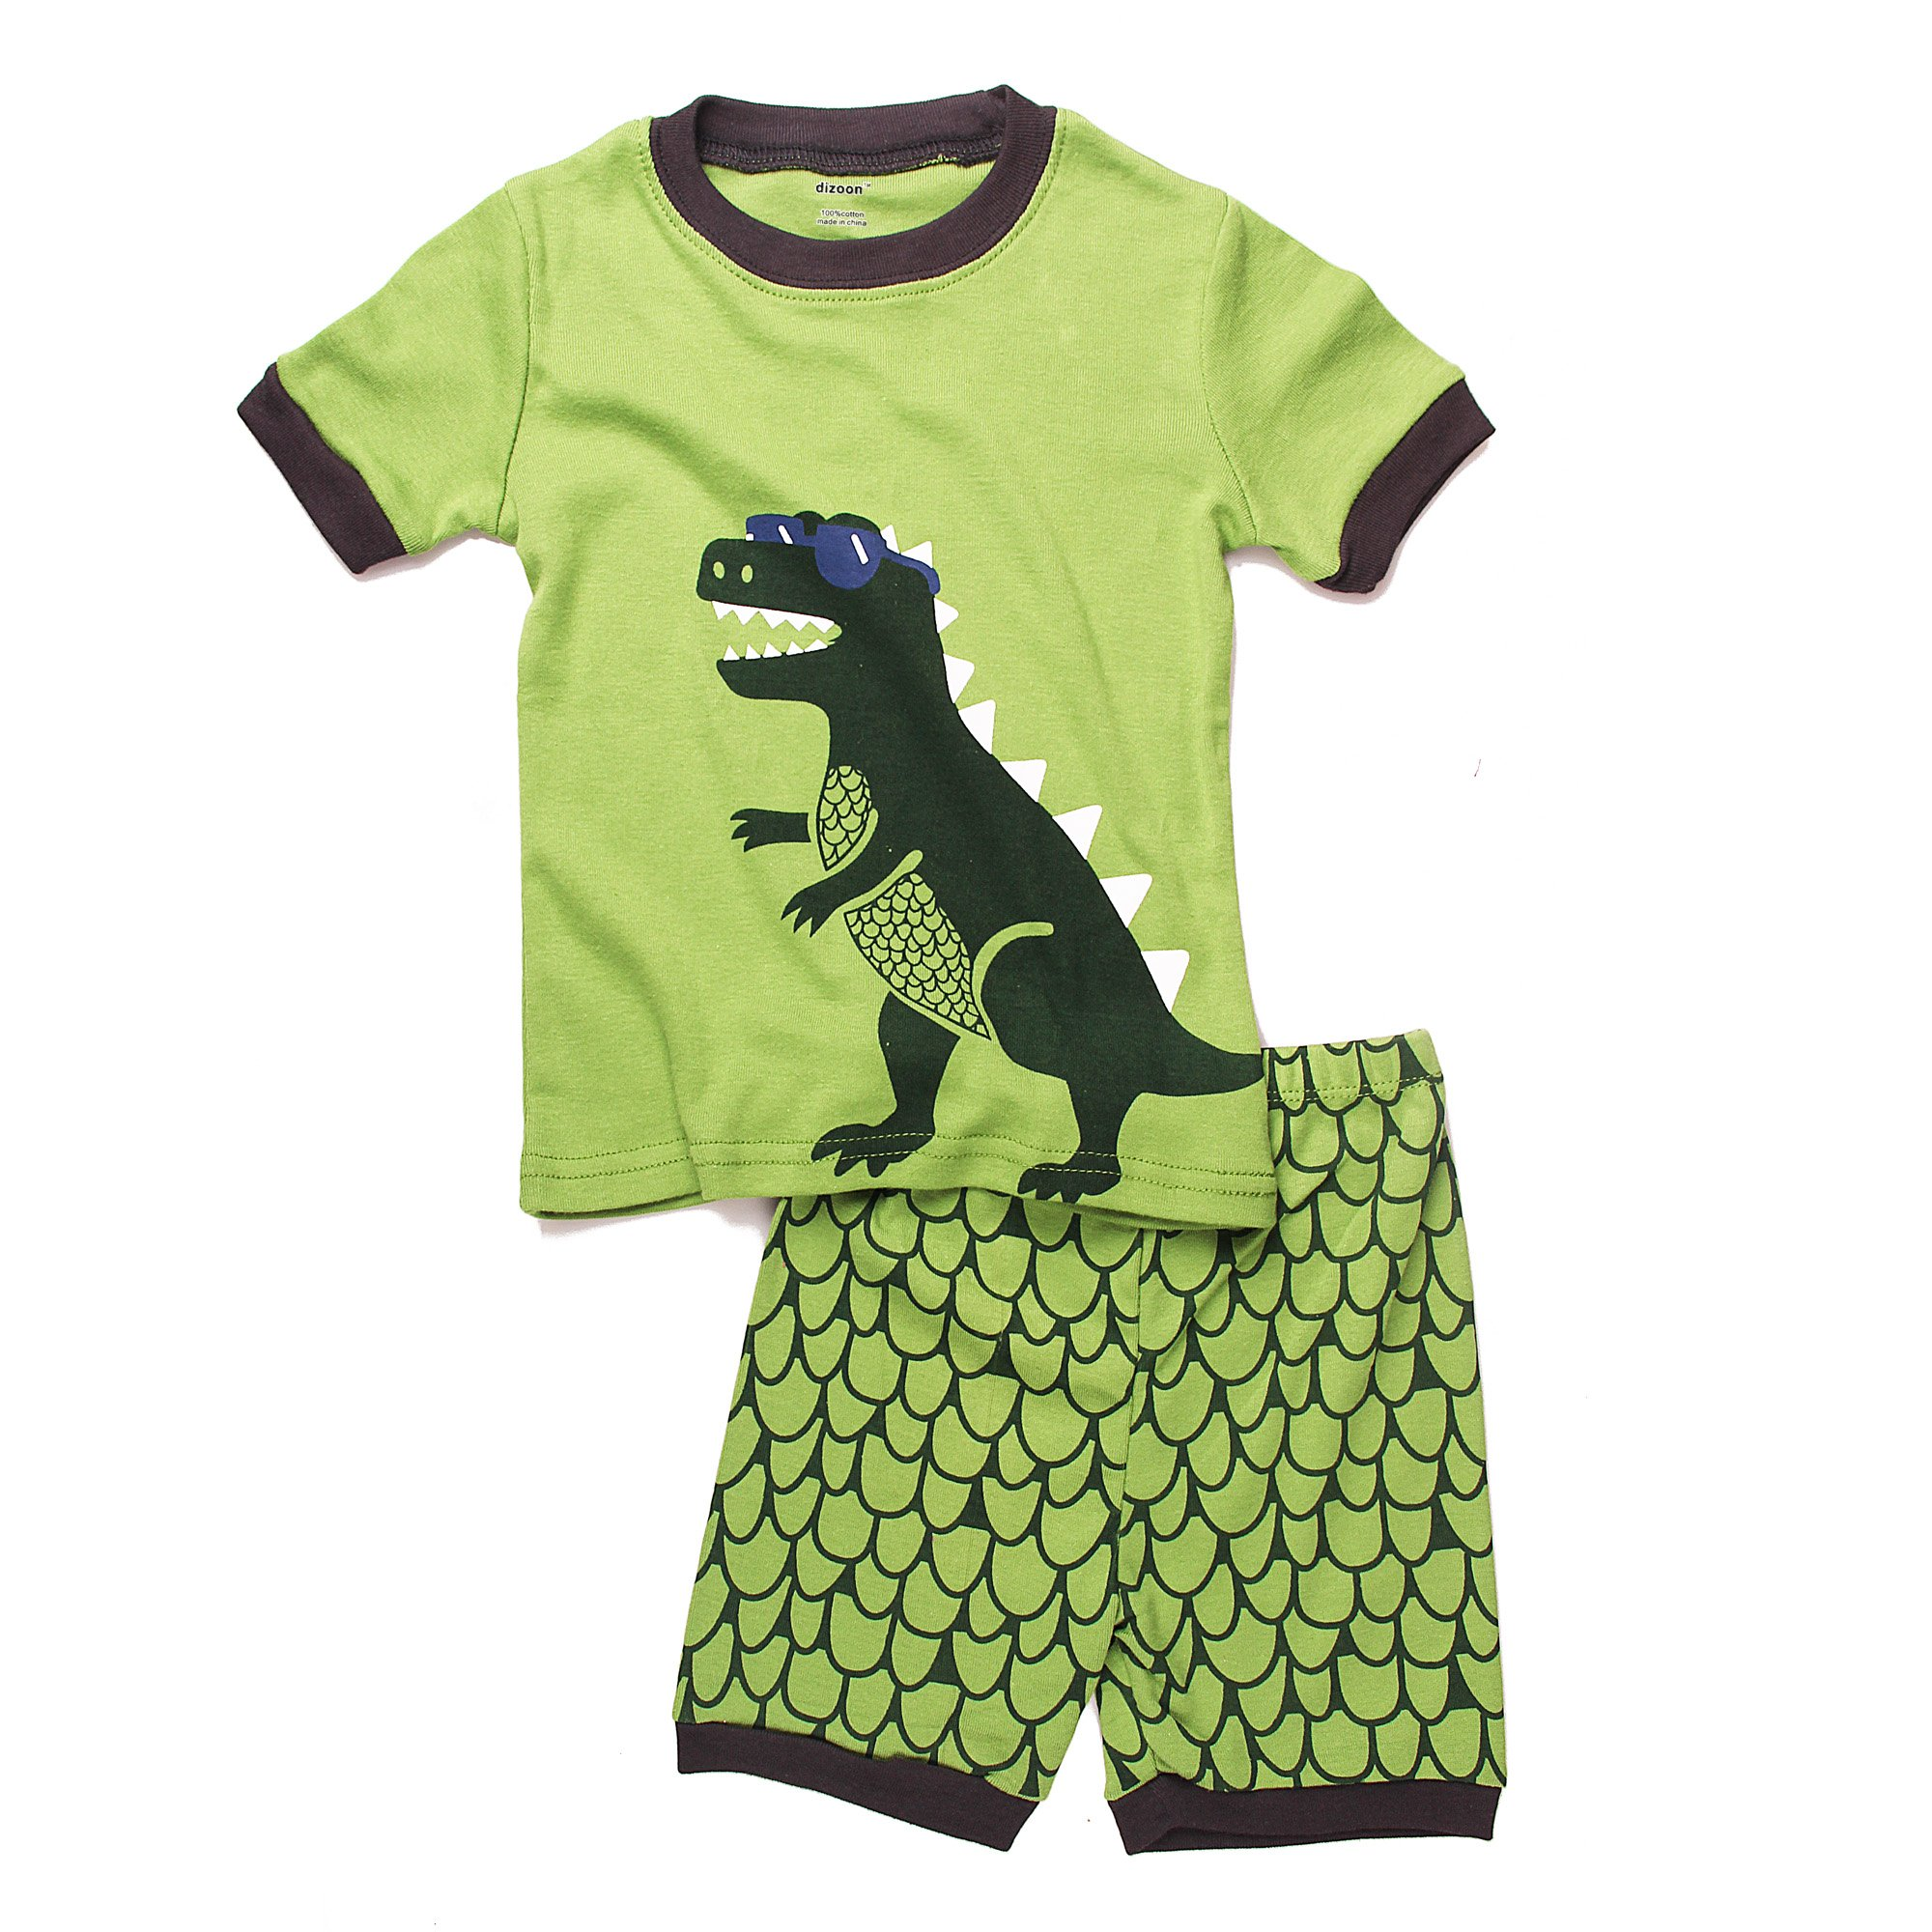 PRETCFTB Boys 2-Piece Short Pajama Set 100%Cotton Green Dinosaur Size 2-7T (7T, Glasses Dinosaur)